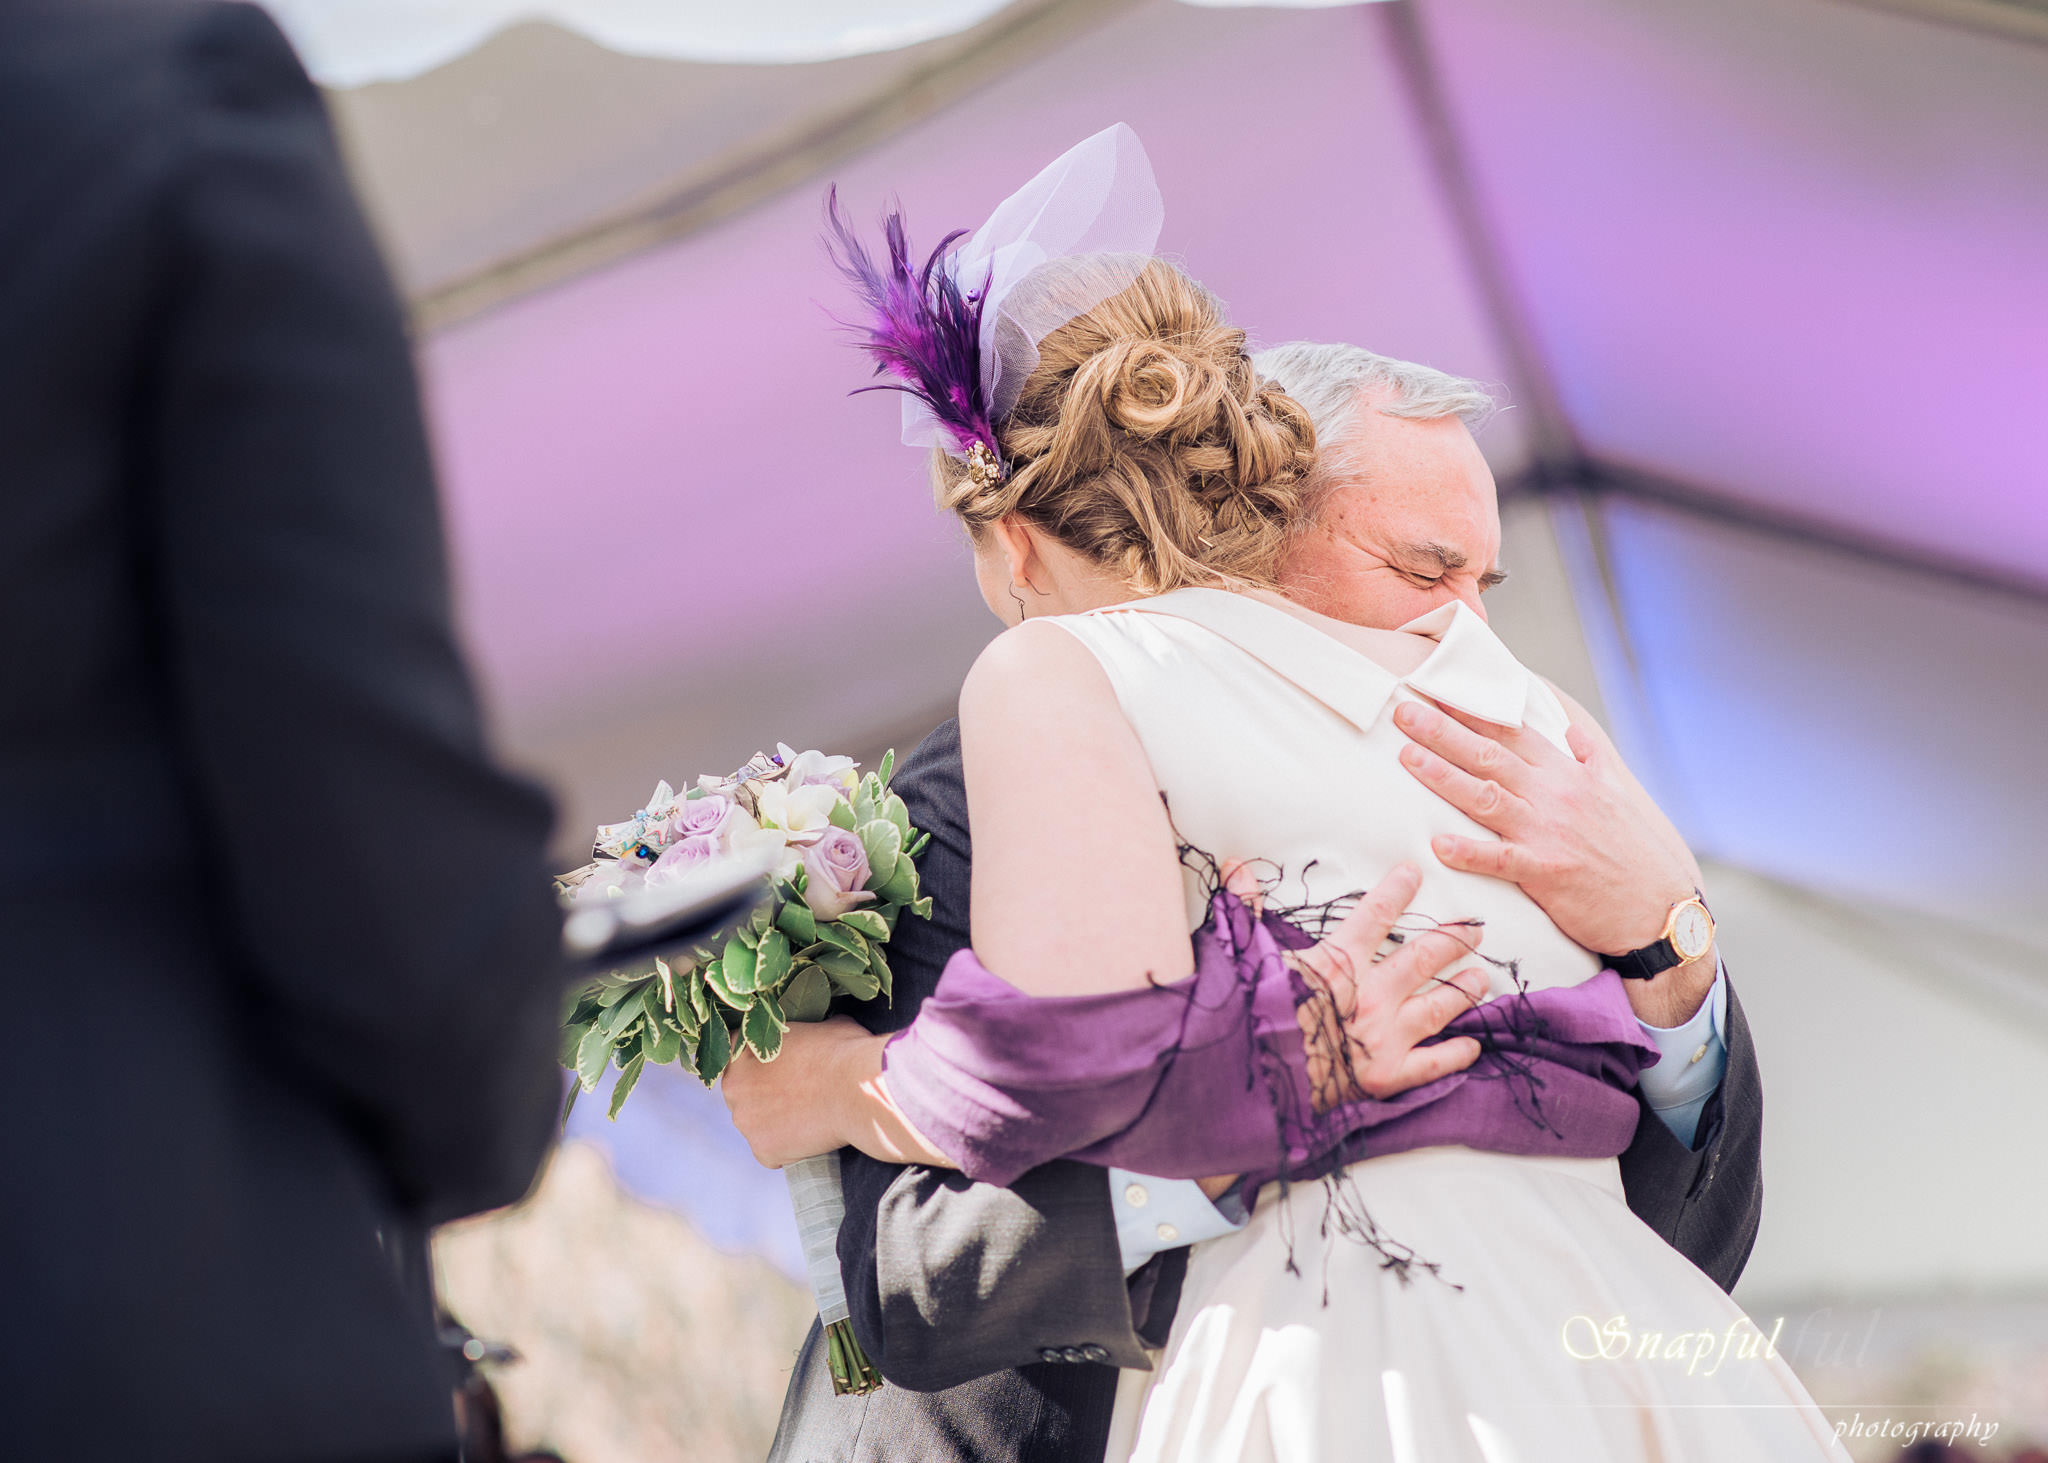 heartfelt moment between dad and bride